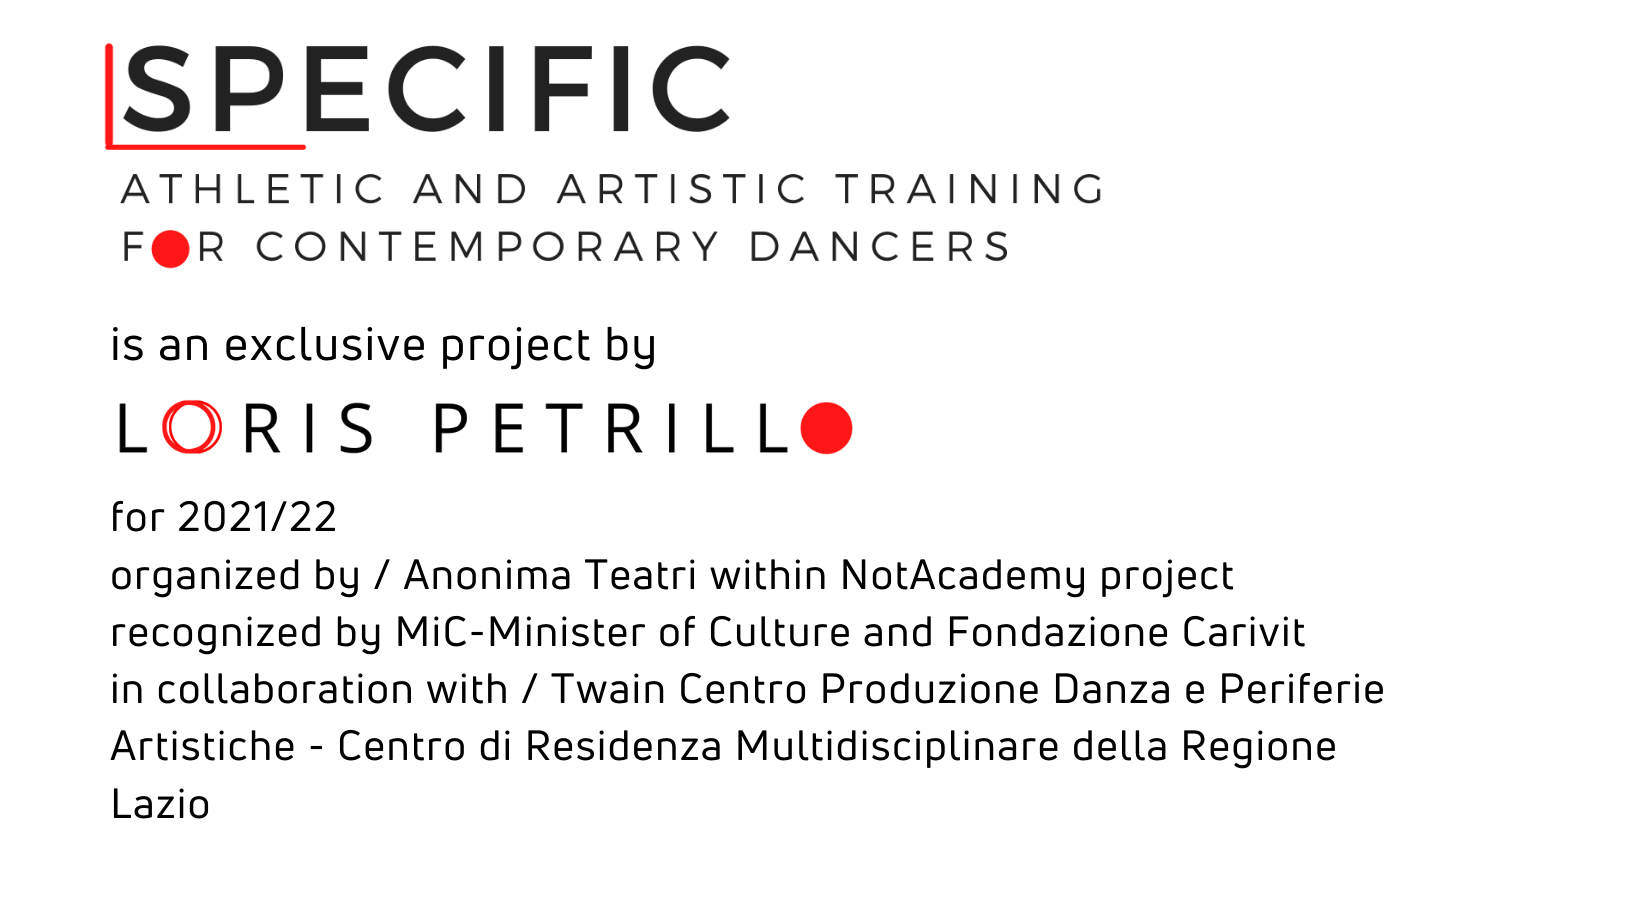 SPECIFIC athletic and artistic training for contemporary dancers - credits